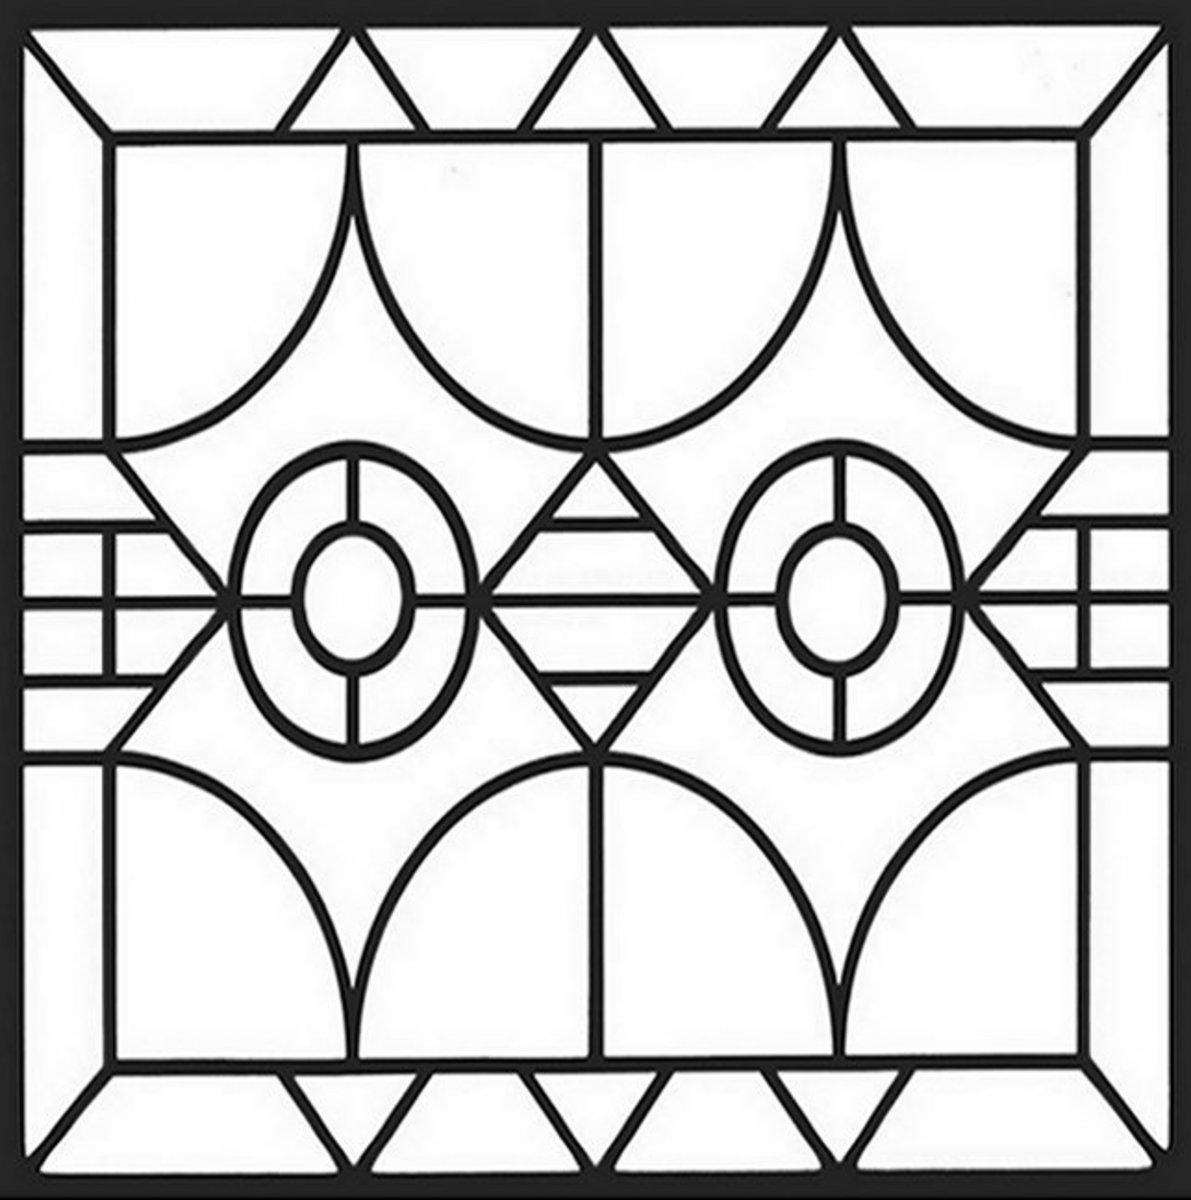 stained glass window coloring pages large stained glass coloring pages easy coloring pages glass pages window stained coloring